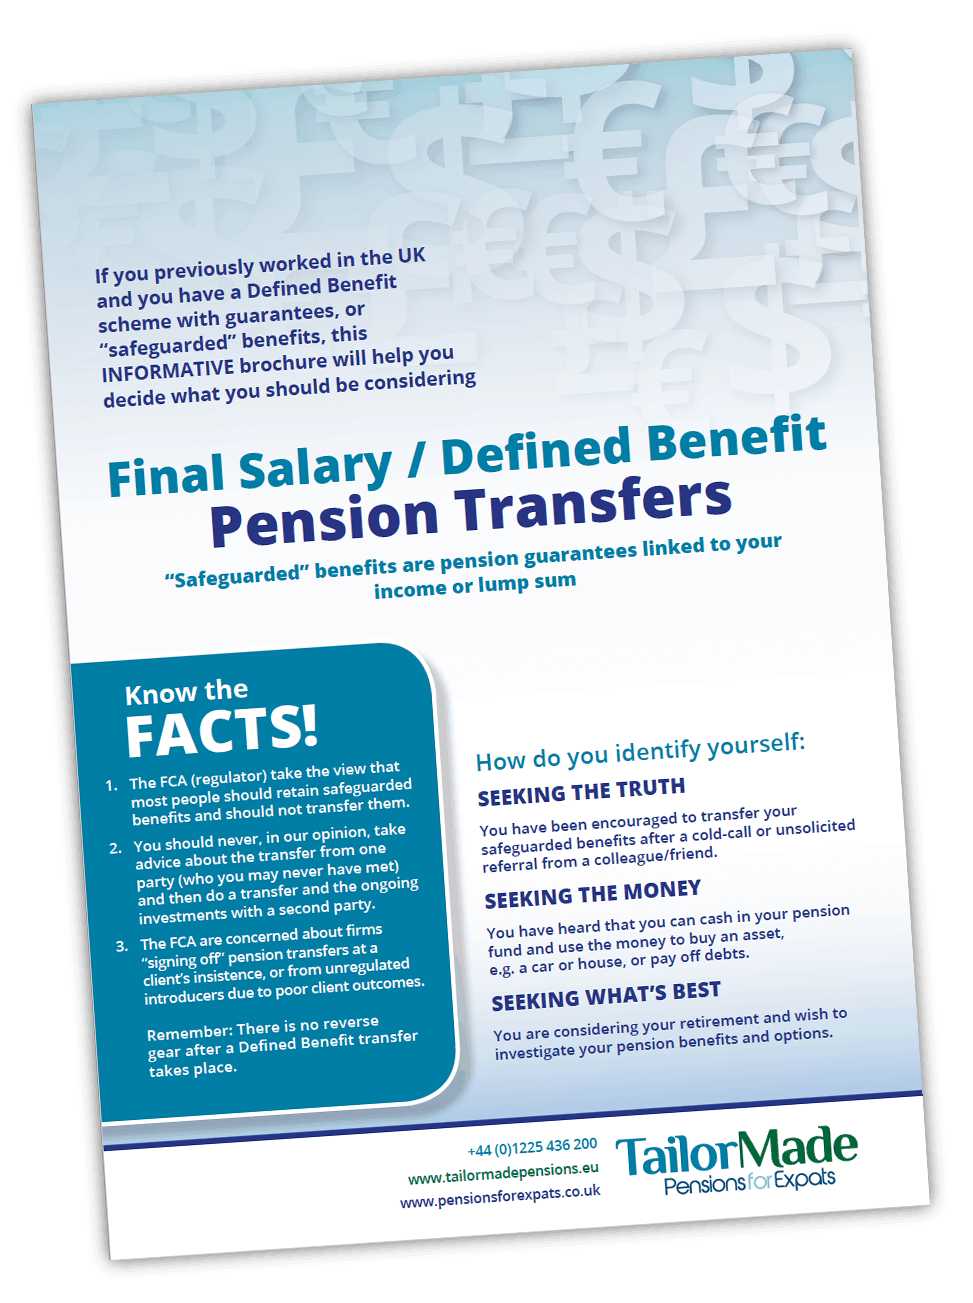 British Pensions Defined Benefit Transfers SIPPs Information For USA Brochure